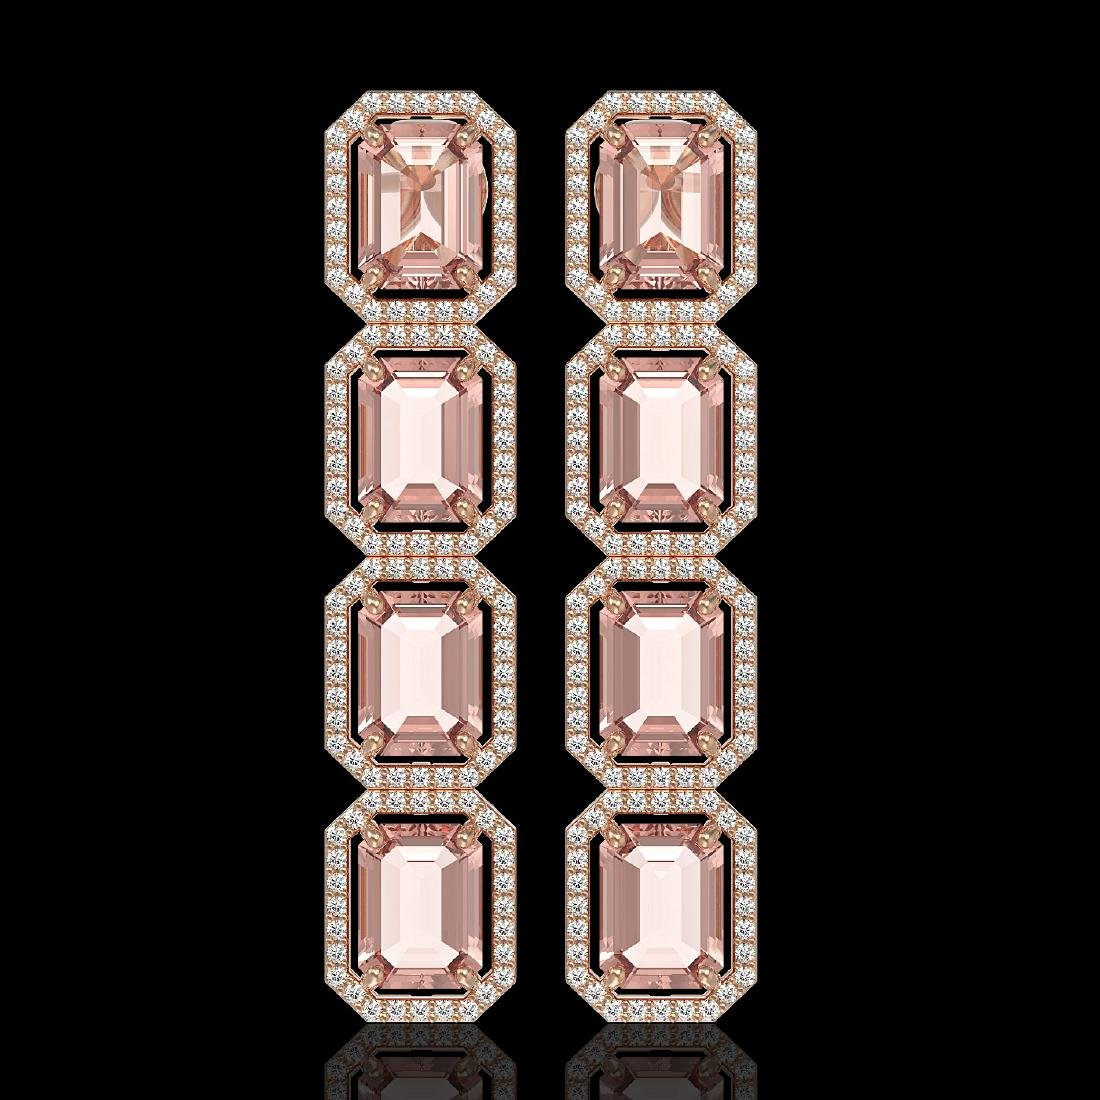 19.81 CTW Morganite & Diamond Halo Earrings 10K Rose